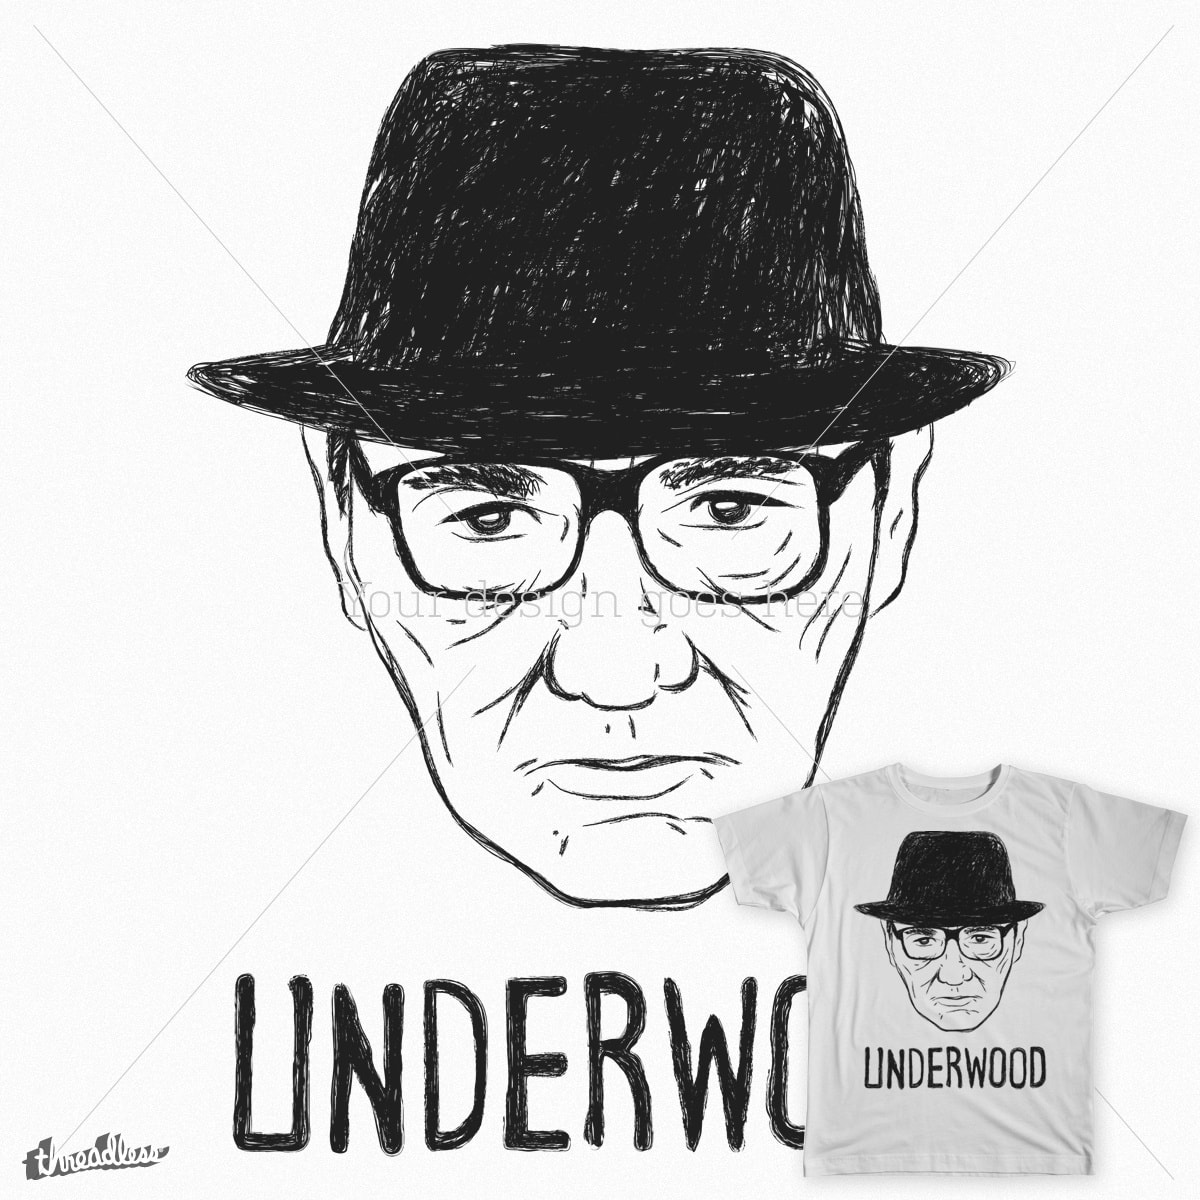 Underwood sketch by TP79 on Threadless